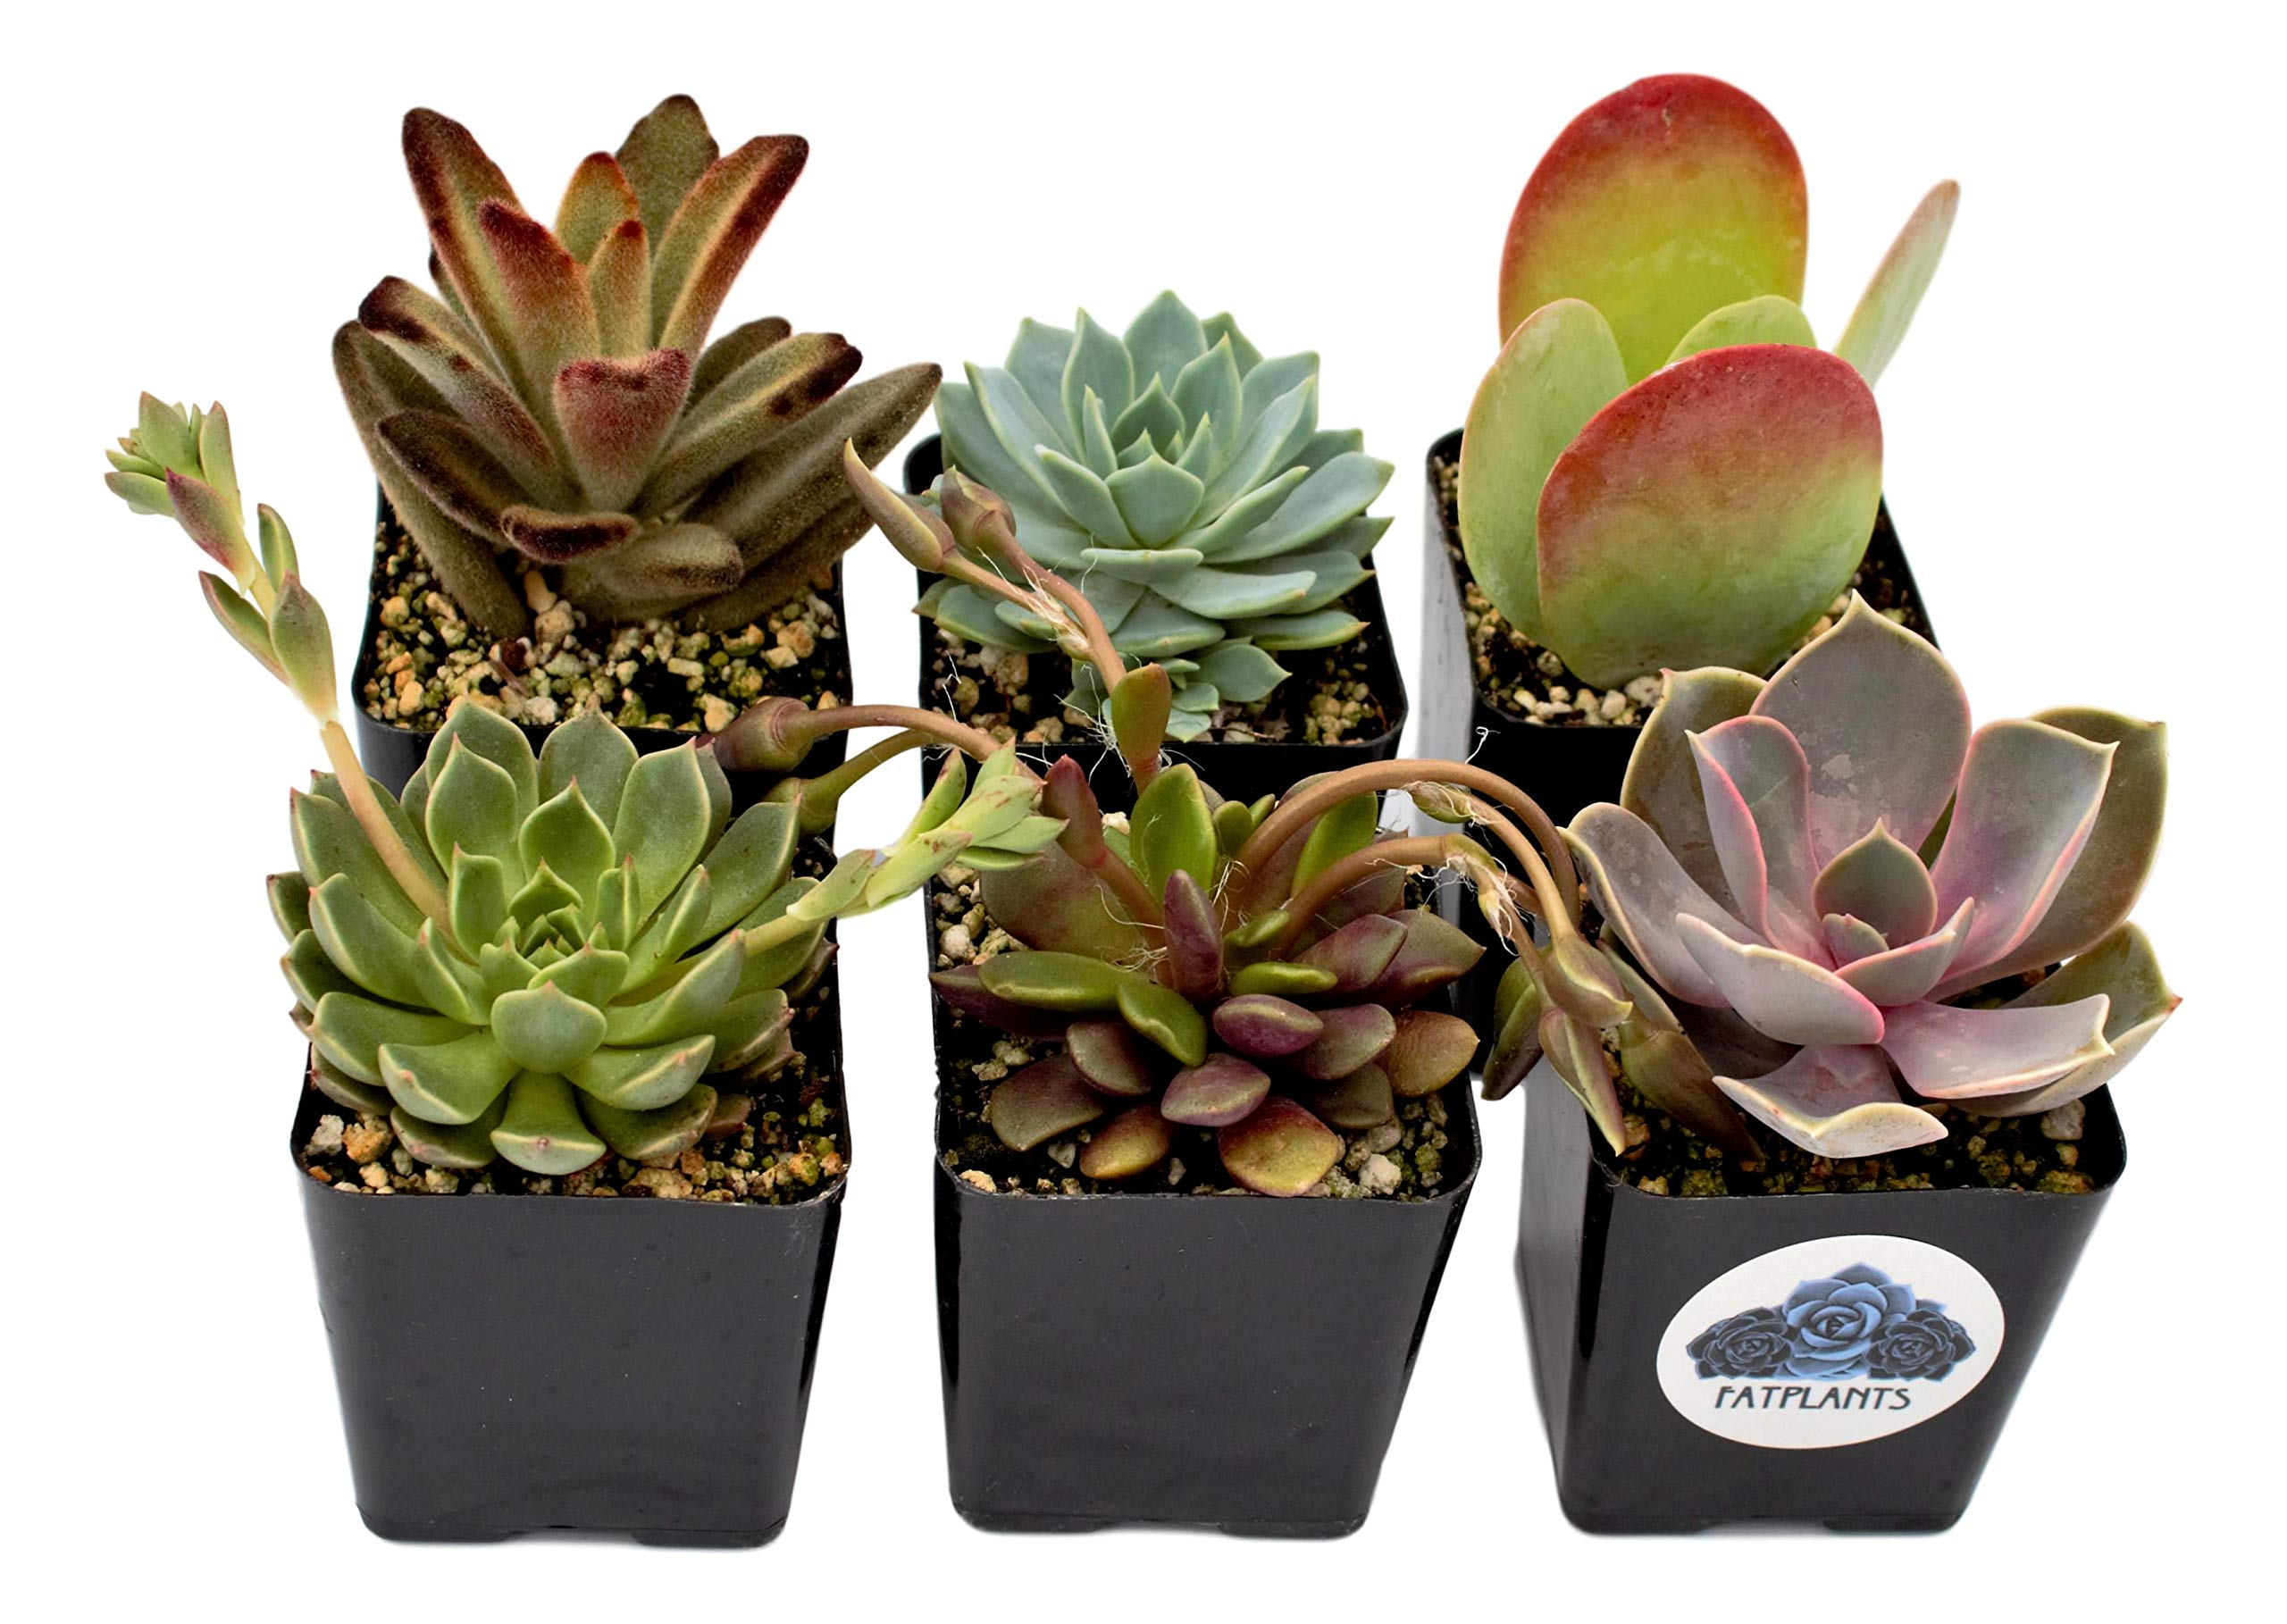 Fat Plants San Diego Premium Succulent Plant Variety Package. Live Indoor Succulents Rooted in Soil in a Plastic Growers Pot (6) by Fat Plants San Diego